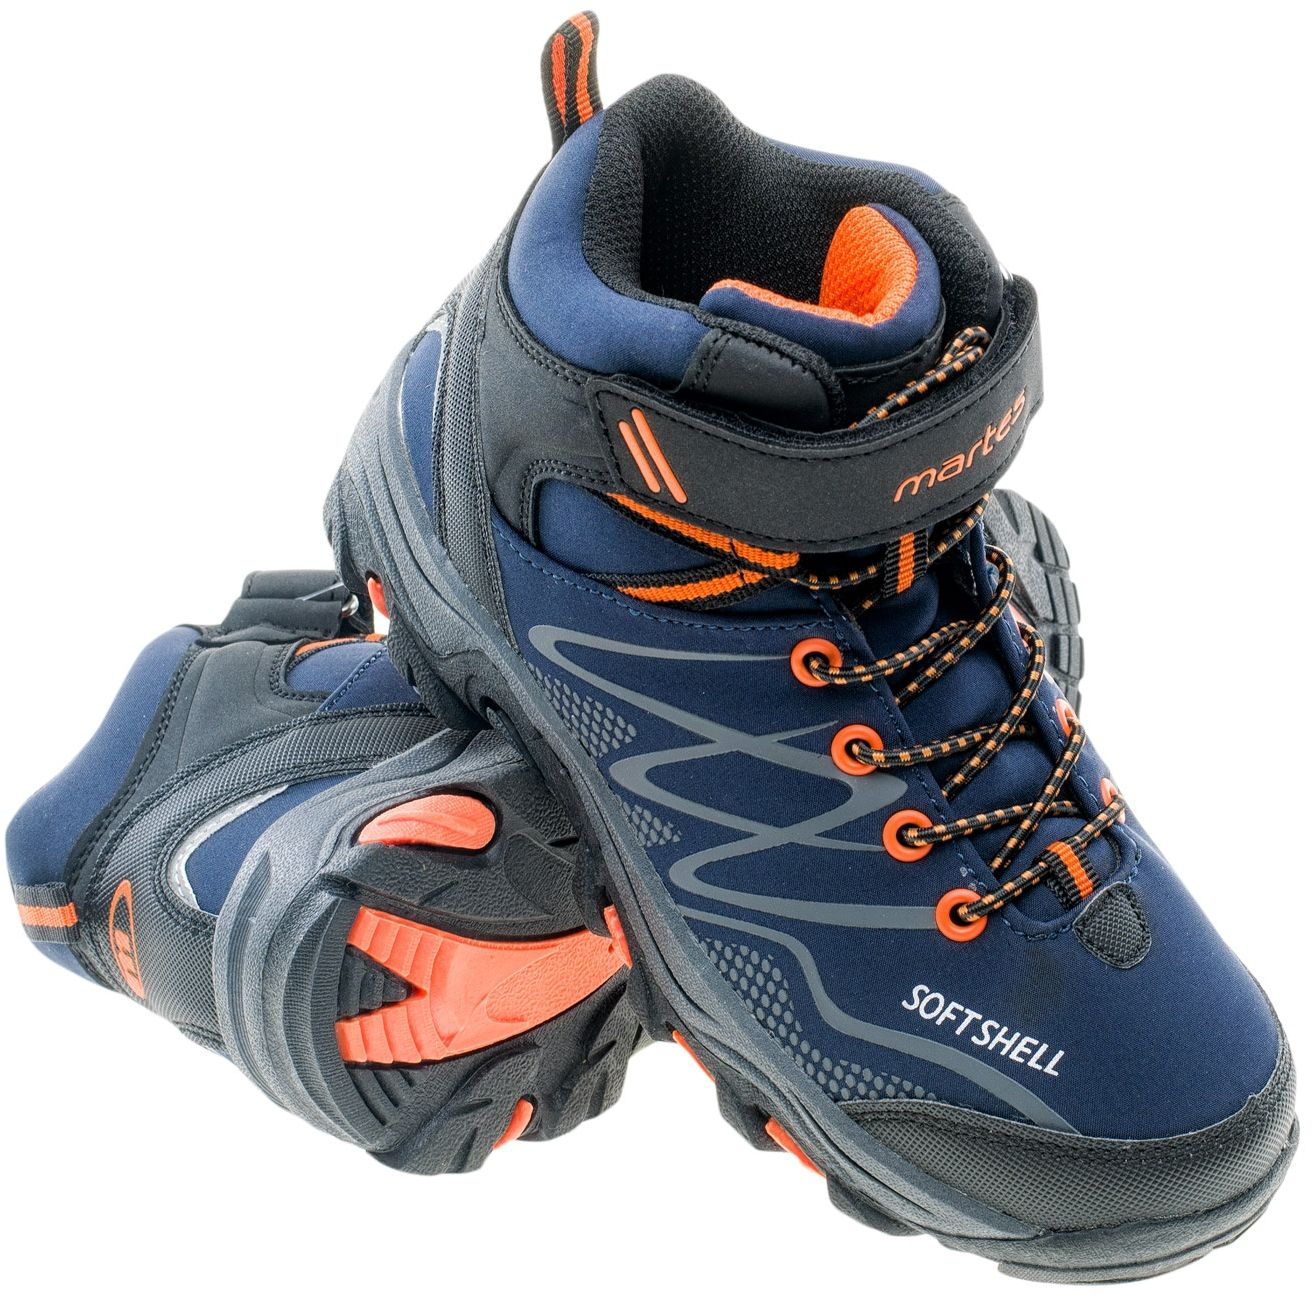 Martes Buty juniorskie RONN MID JR navy/orange/dark grey r. 30 5902786077113